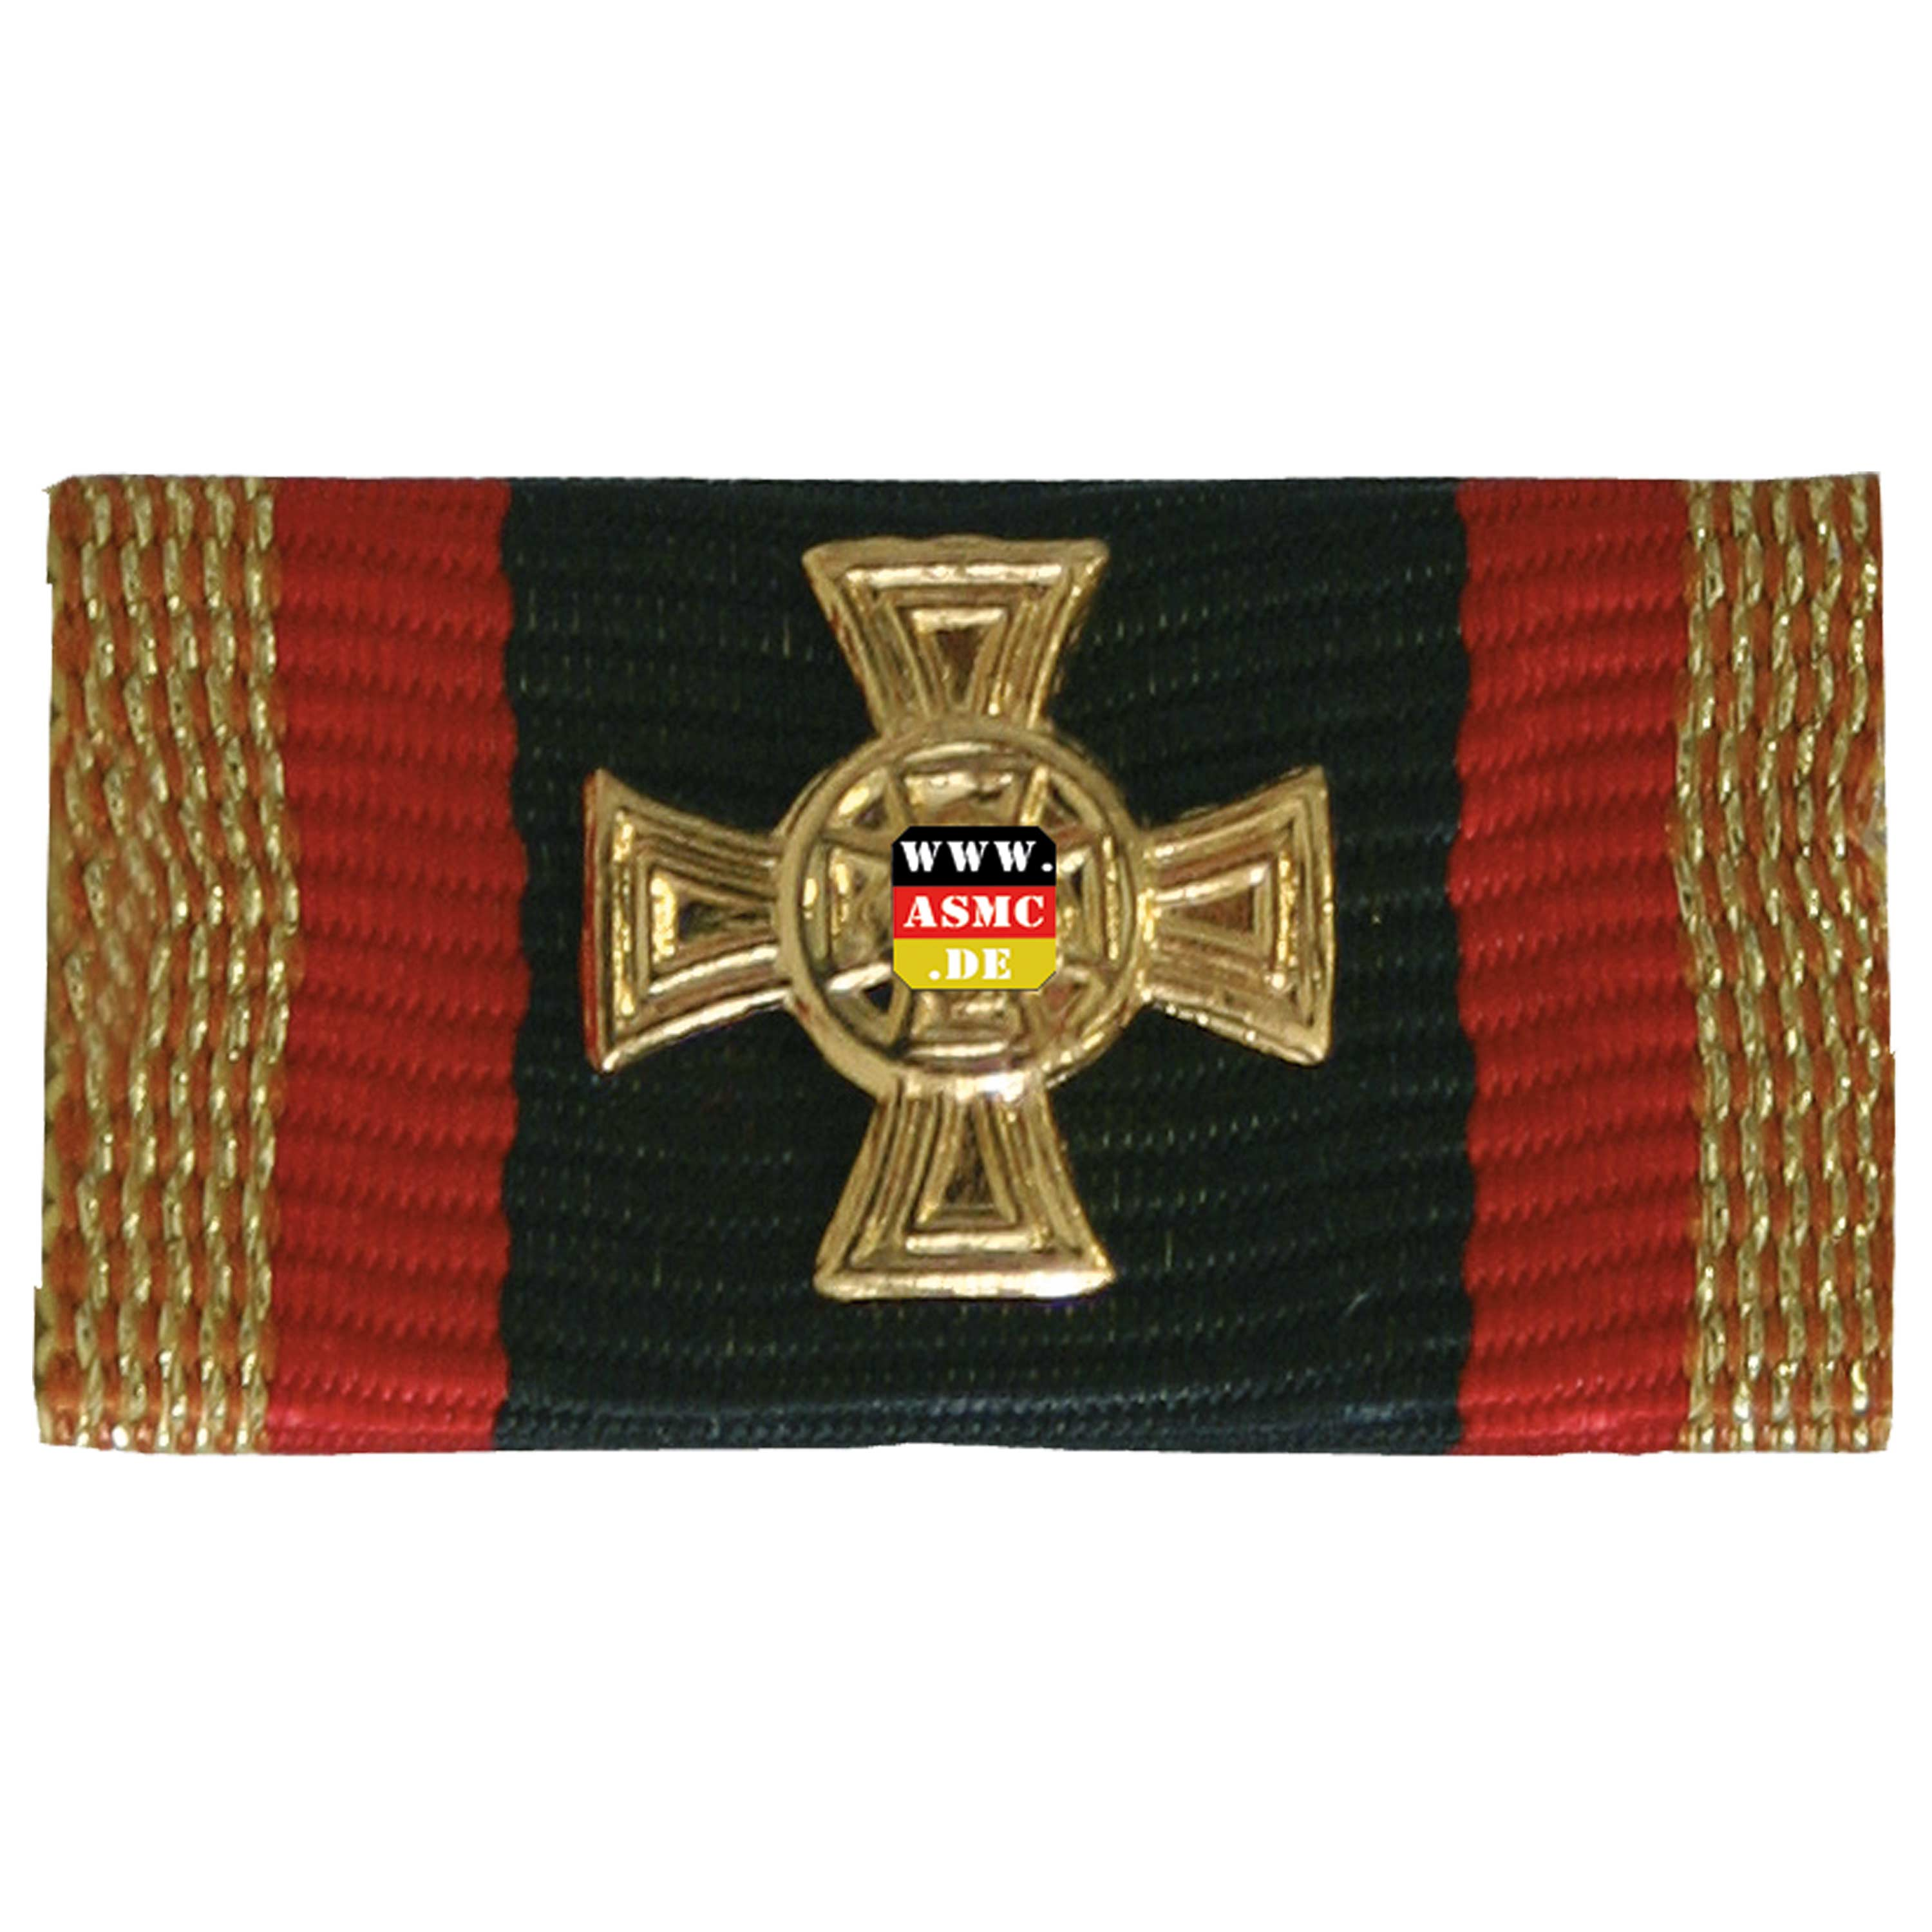 Purchase The Award Ribbon Bundeswehr Cross Of Honor Gold